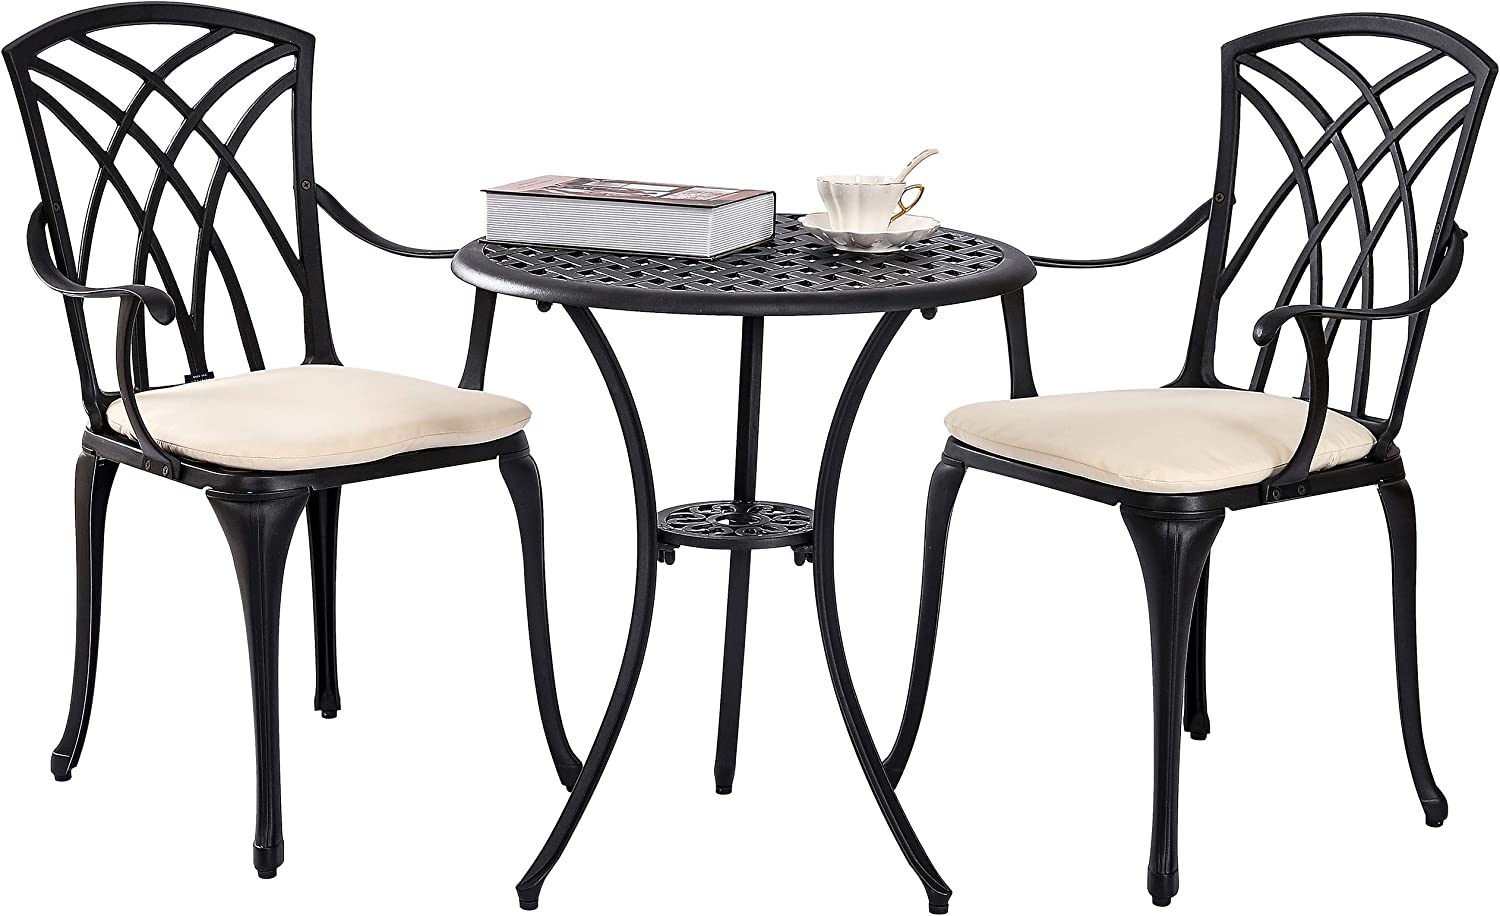 Kinger Home 3 Piece Patio Bistro Table Set Outdoor Furniture Cast Aluminum Bistro Set Table with Cushions - Weatherproof with Timeless Design (Black)